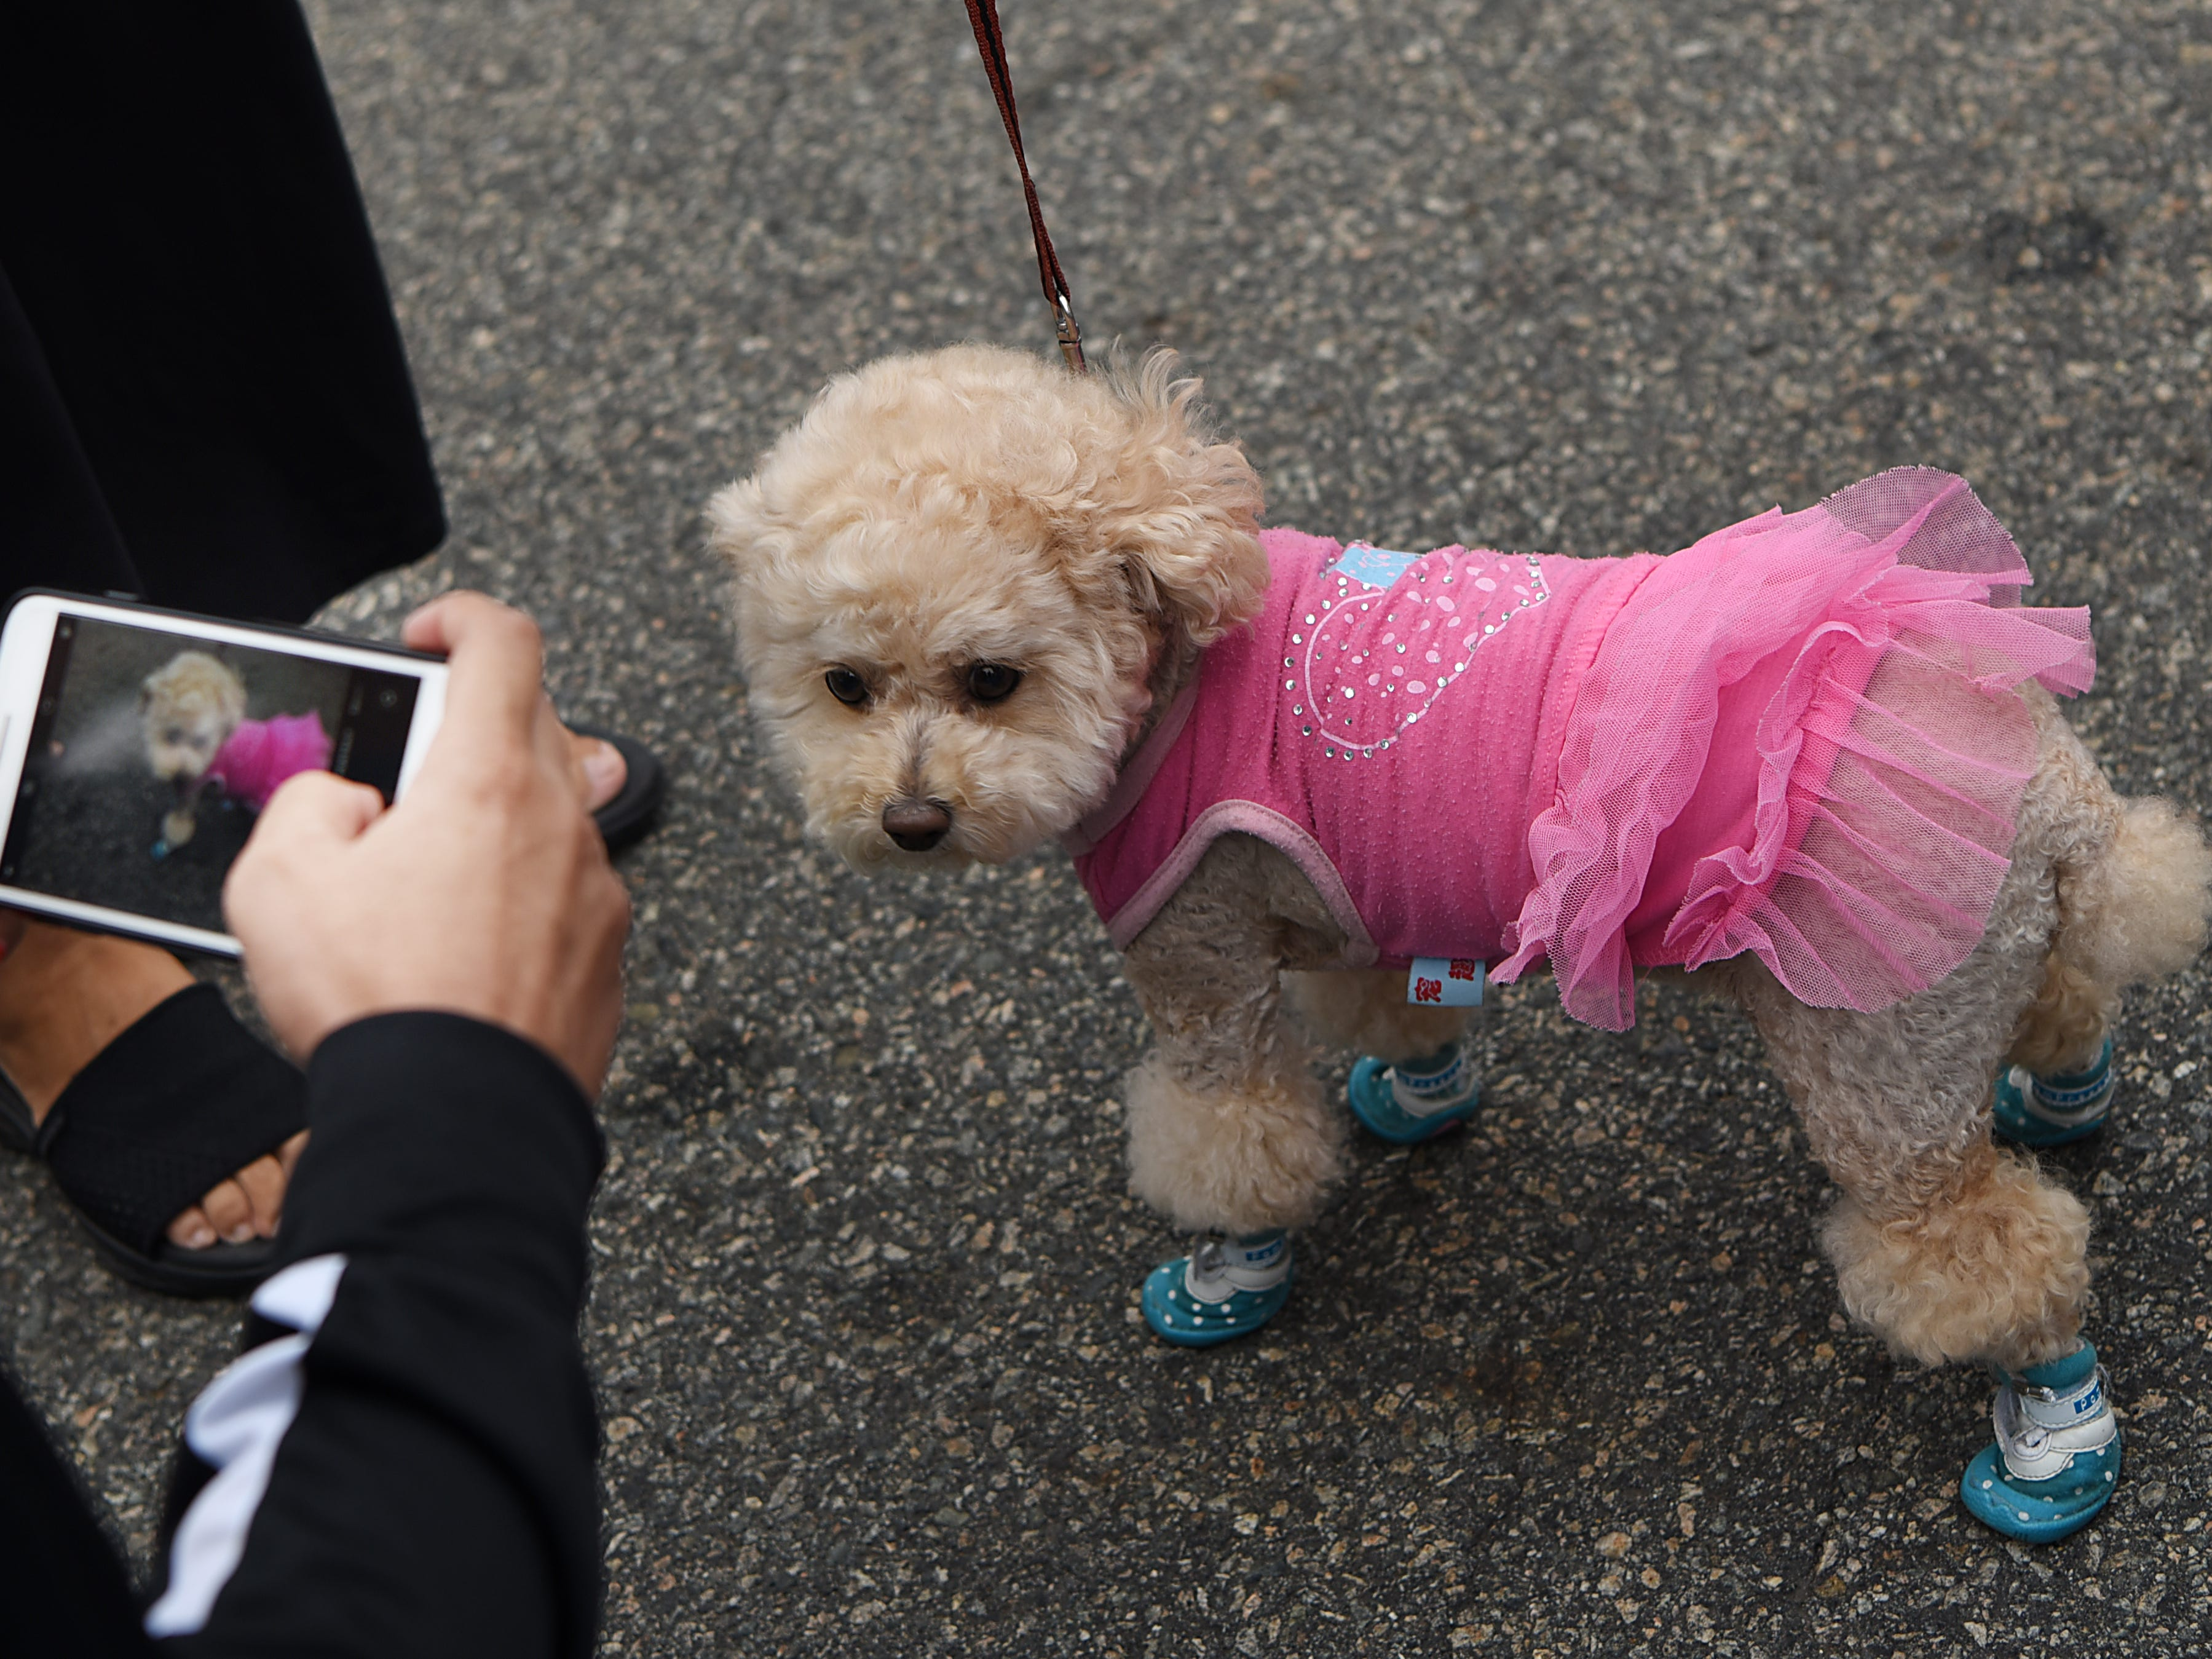 Chanel, a nine year old dog, gets her photo taken. Woofstock 2018, a benefit for Bergen County animal rescue organizations, at City Place in Edgewater on Saturday September 8, 2018.